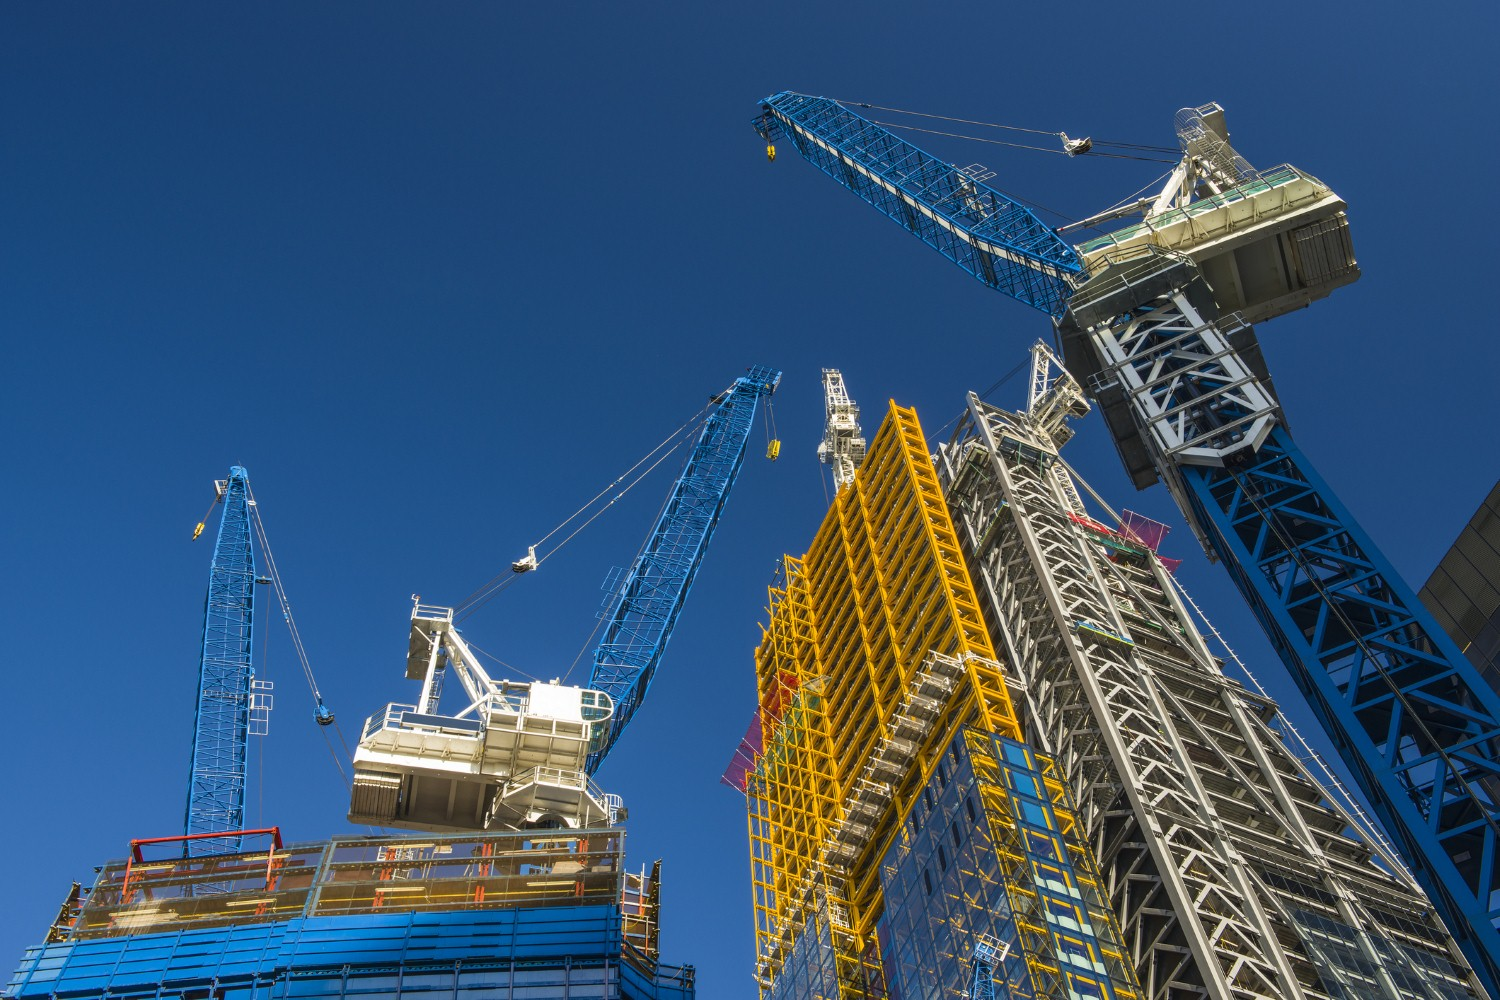 Construction firm tipped for major London property development (iStock)